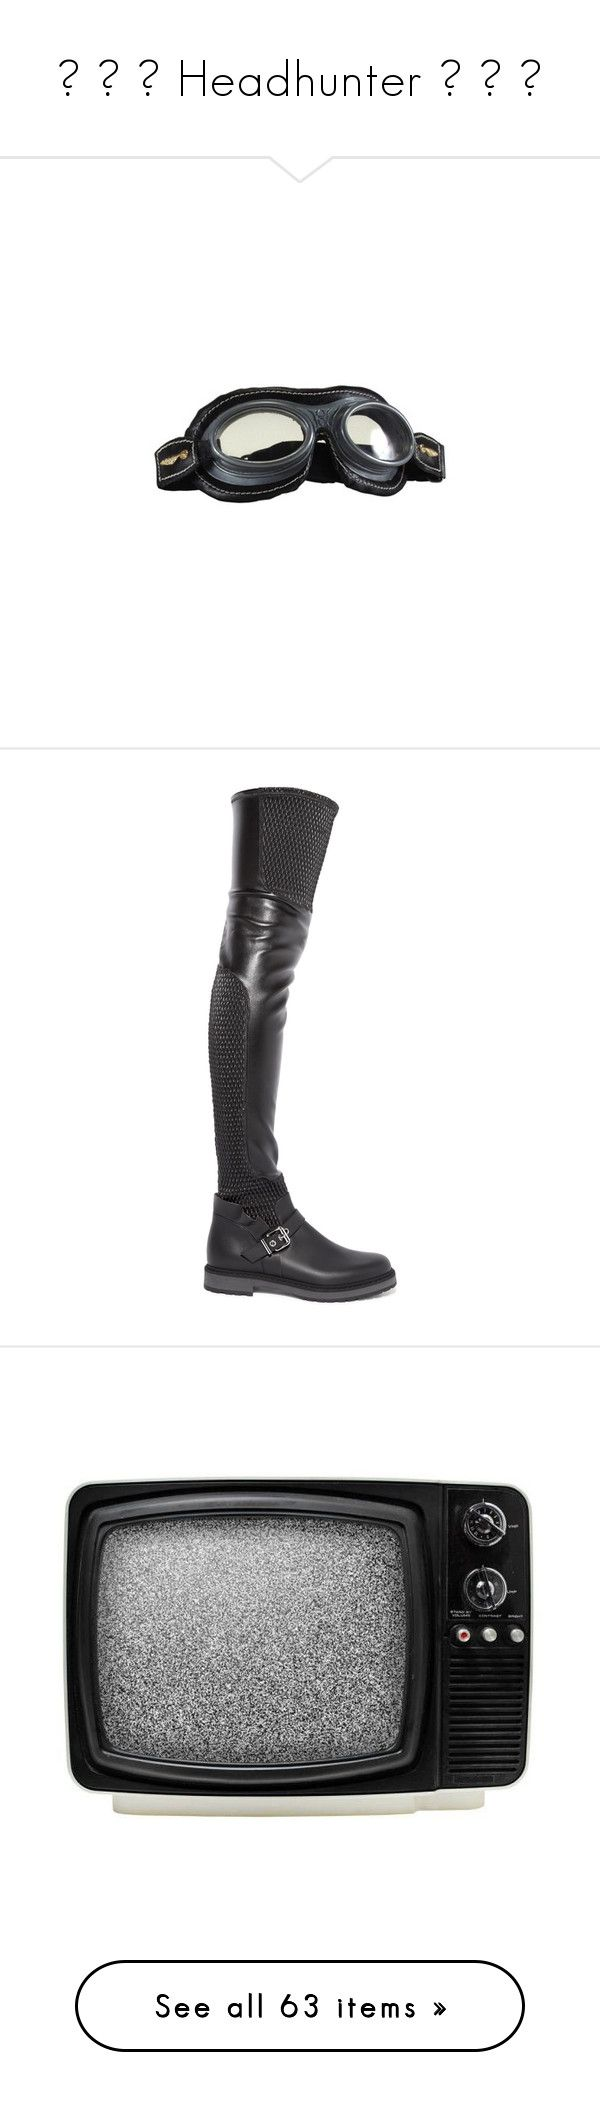 """""""⛓ ☢ ⚠ Headhunter ⚠ ☢ ⛓"""" by void-witch ❤ liked on Polyvore featuring halloween, harry potter, shoes, boots, fendi, thigh boots, stretch leather boots, over the knee boots, thigh high boots and over the knee slouch boots"""